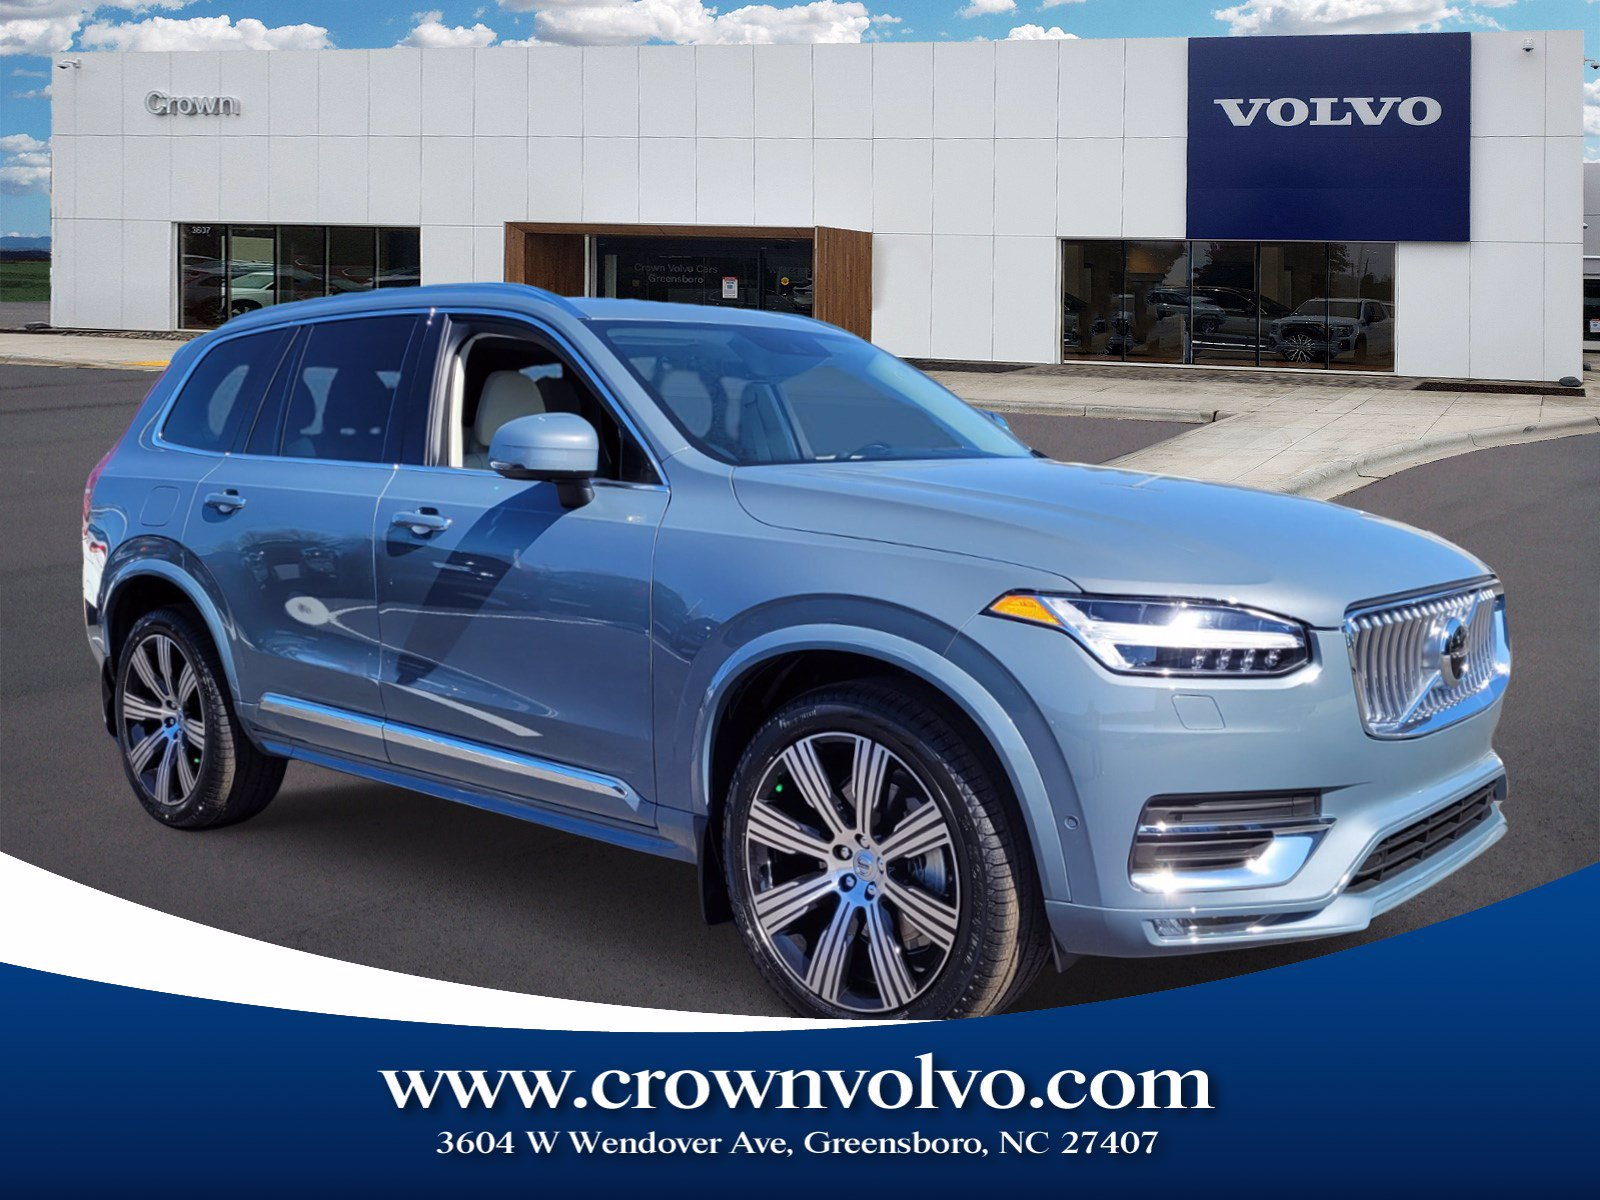 New Volvo For Sale Crown Volvo Cars Serving Greensboro And High Point Volvo S60 Xc40 Xc60 Xc70 Xc90 Or V60